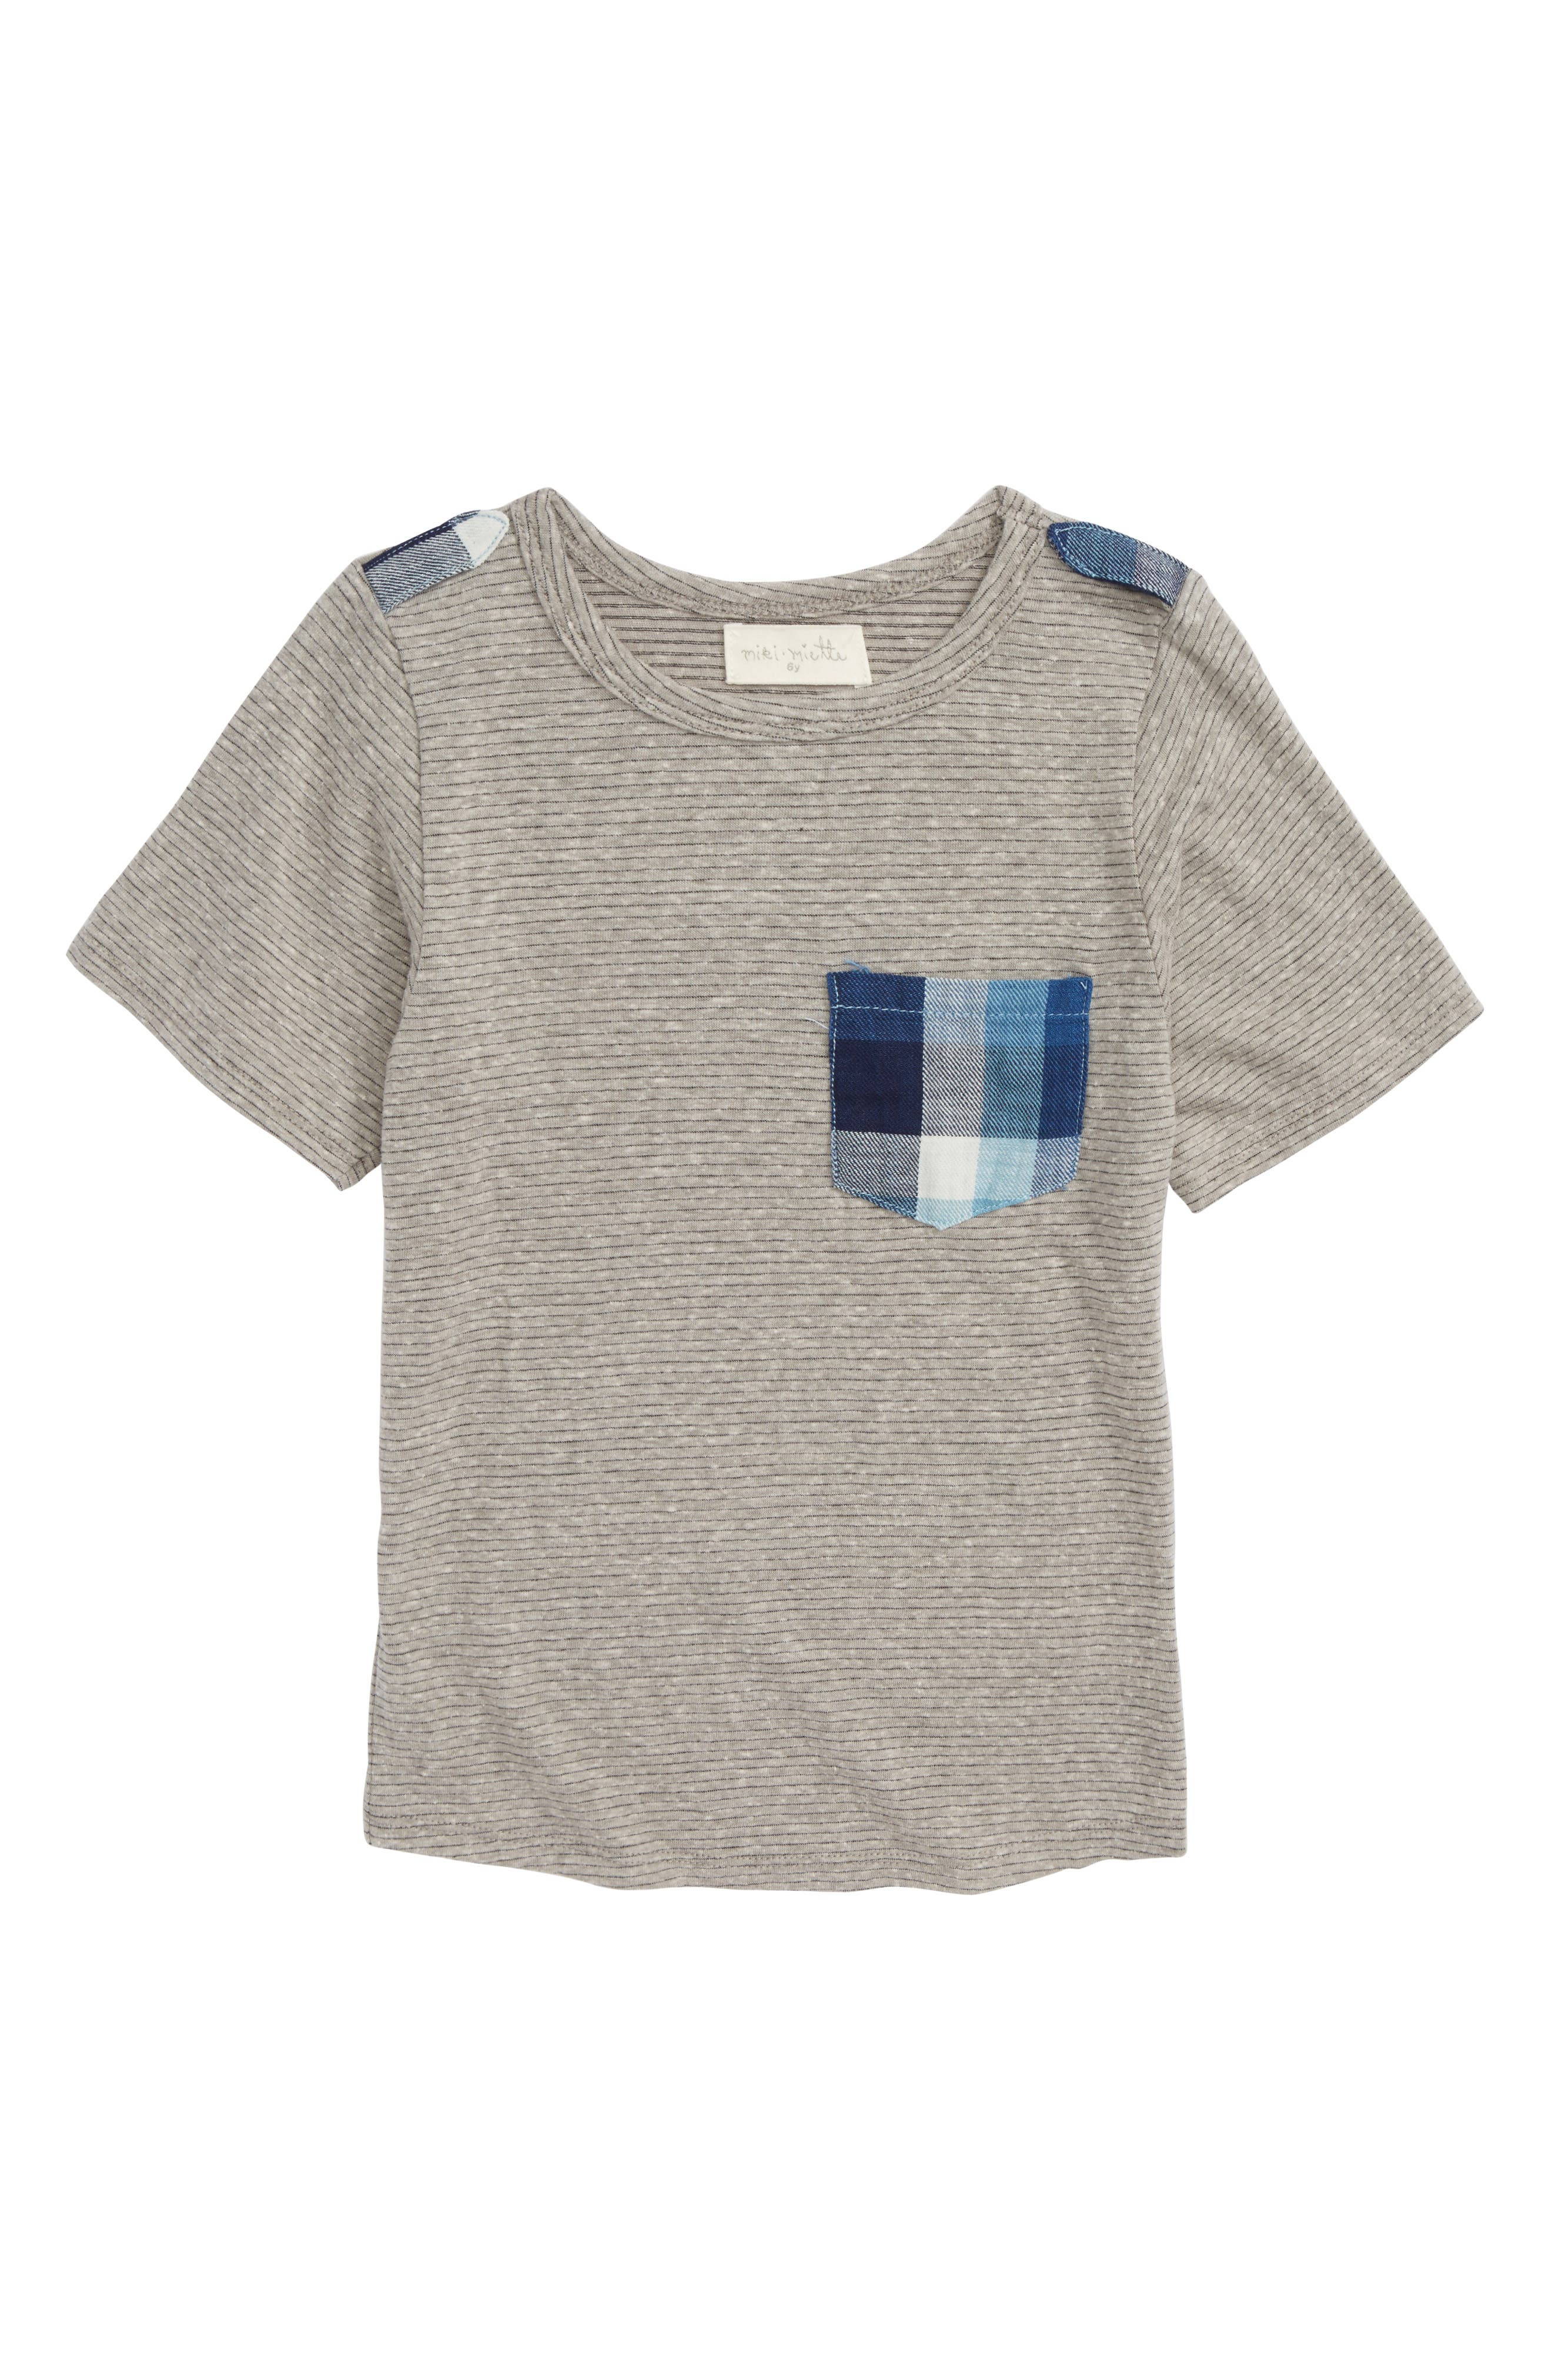 Ranger Pocket T-Shirt,                         Main,                         color, 020